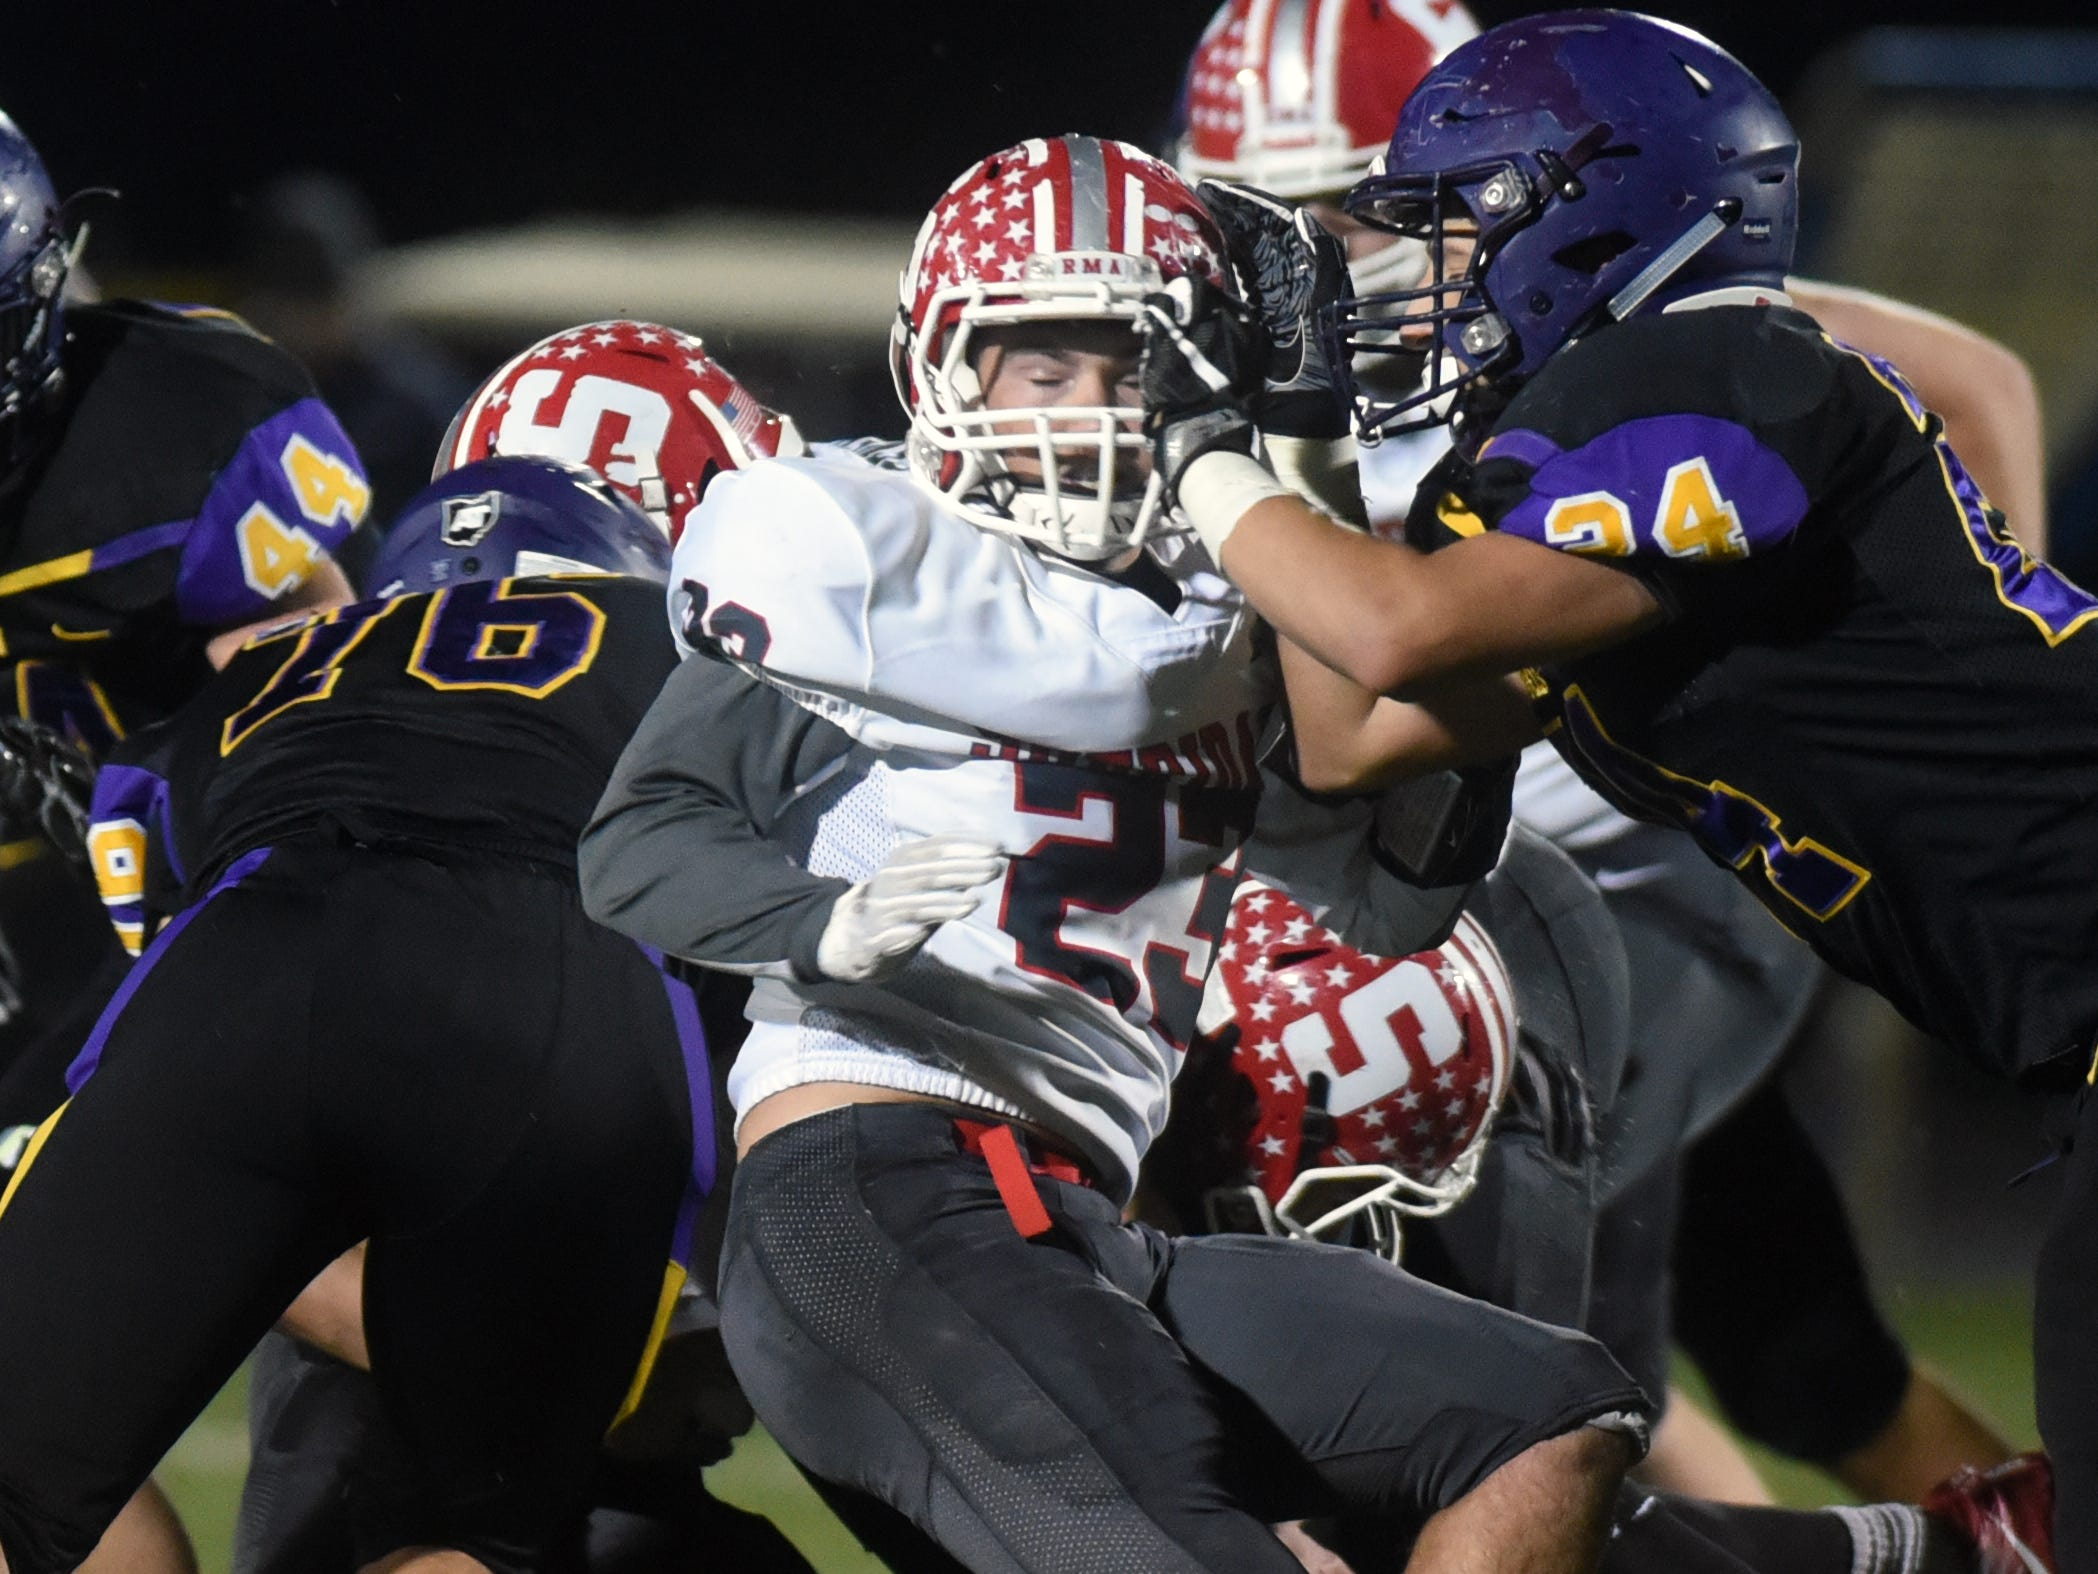 Nick Ranalli tries to fight off a block during Sheridan's 27-19 win against No. 2 ranked Bellbrook in a Division III, Region 11 quarterfinal on Friday at Miami Valley South Stadium.